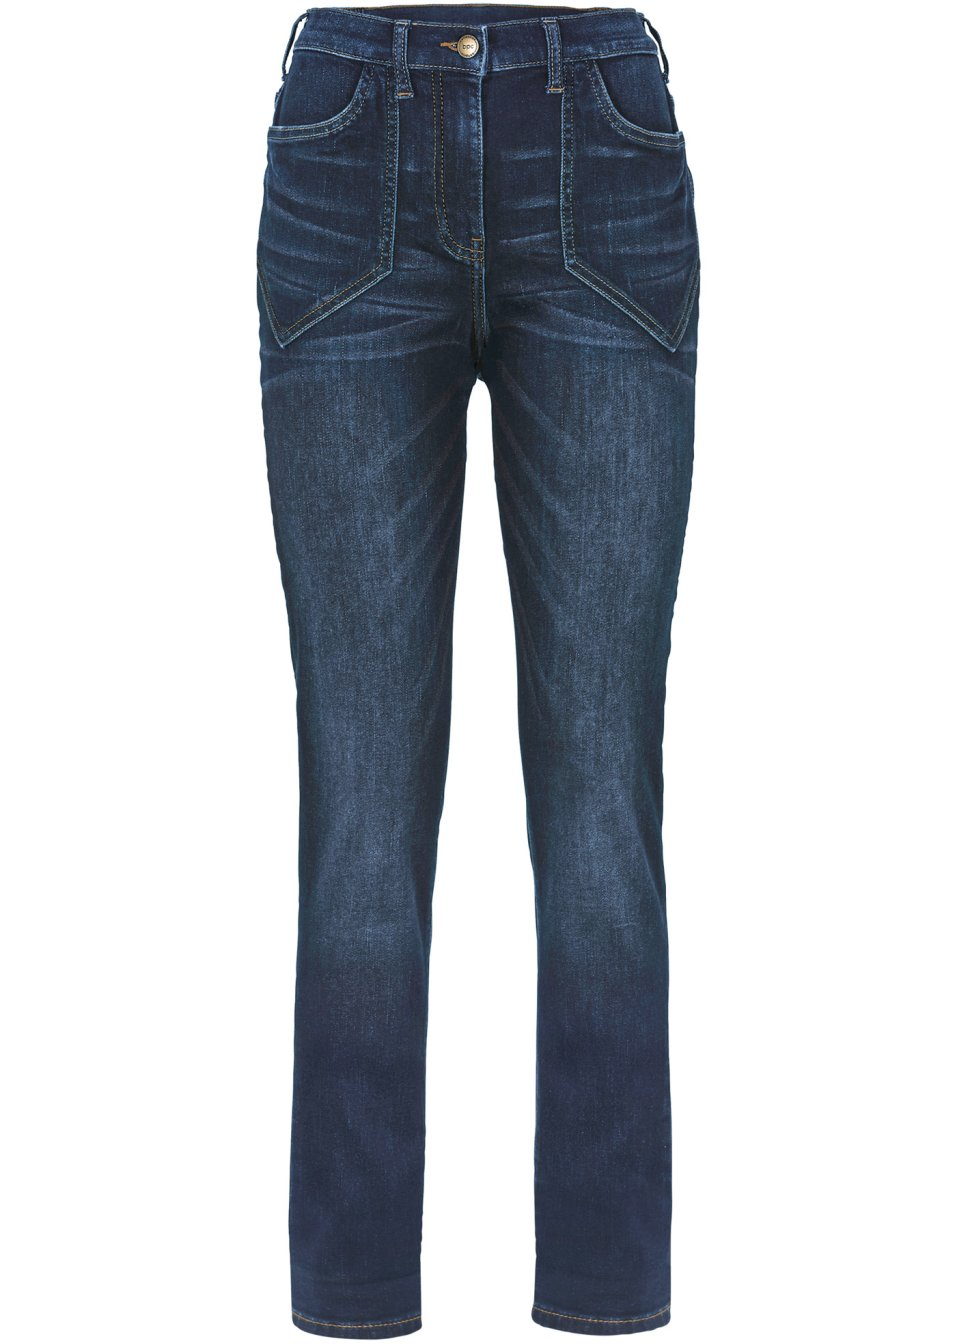 Stretchjeans hoge taille